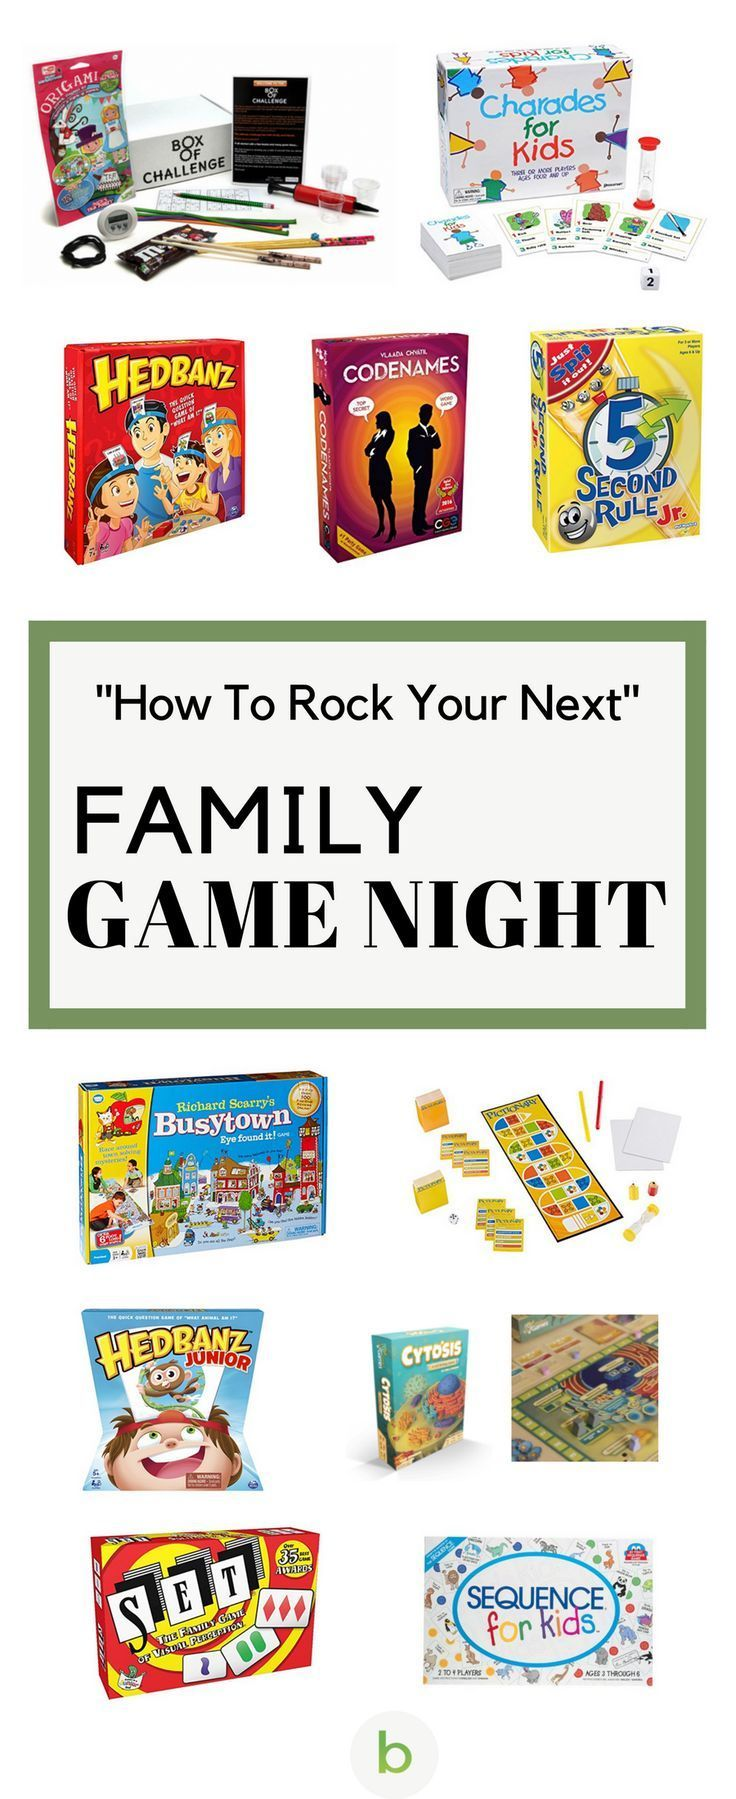 How To Rock Your Next Family Game Night | Family game night, Game ...